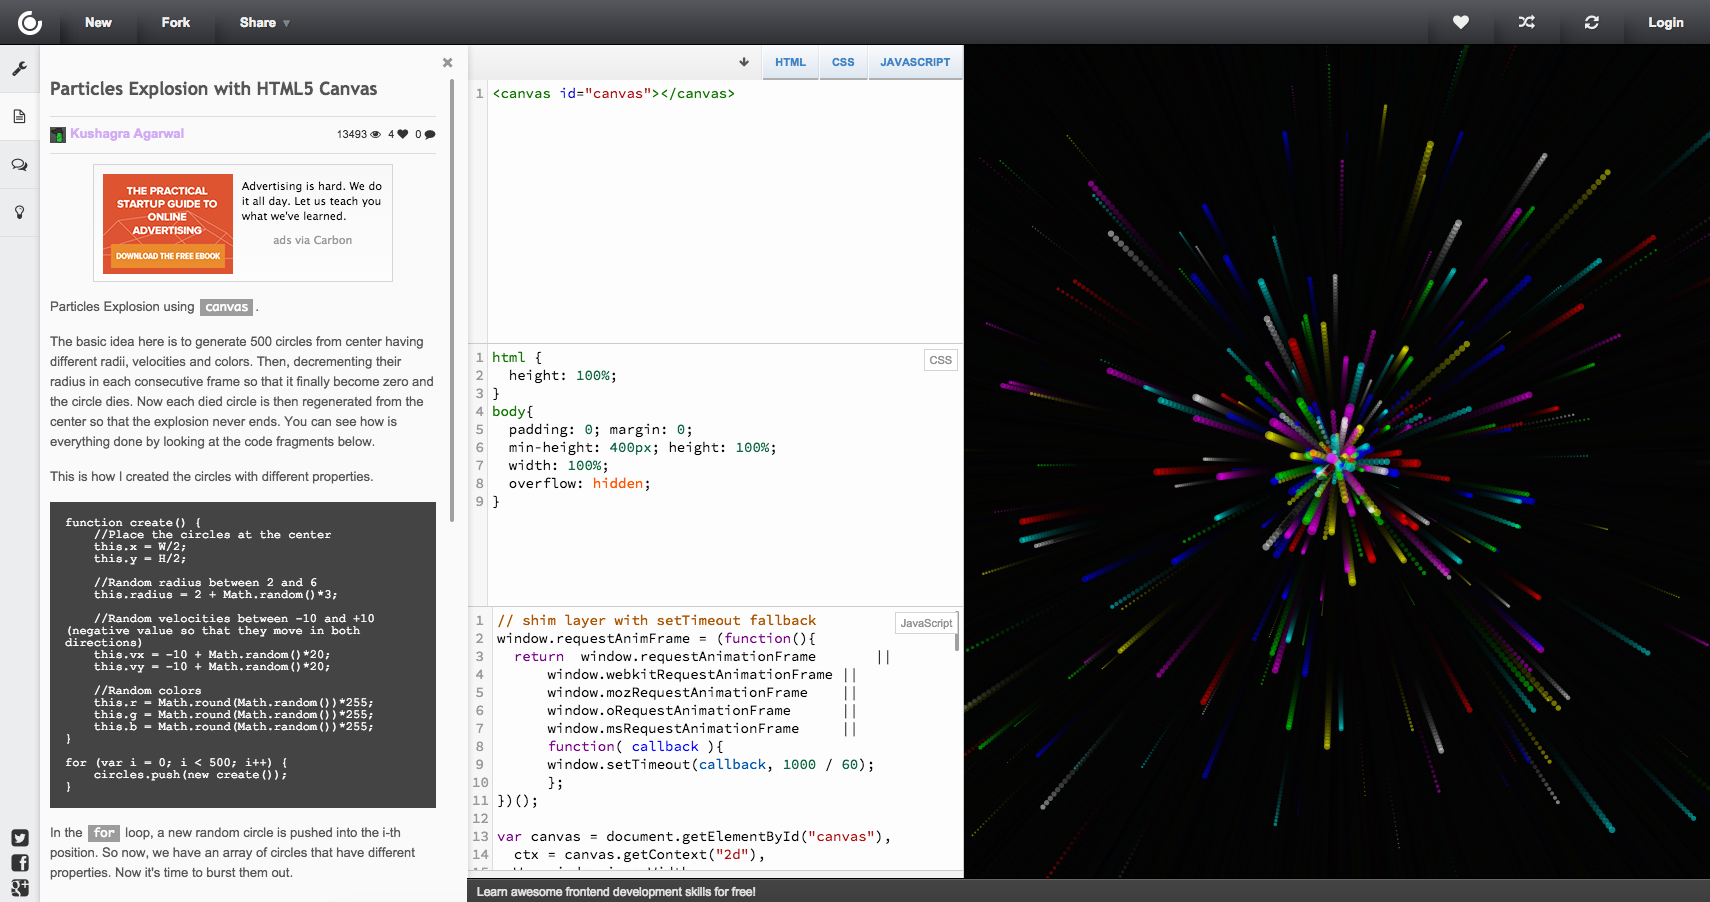 Pin by Murilo Ferreira on Resources | Html5 canvas, Desktop